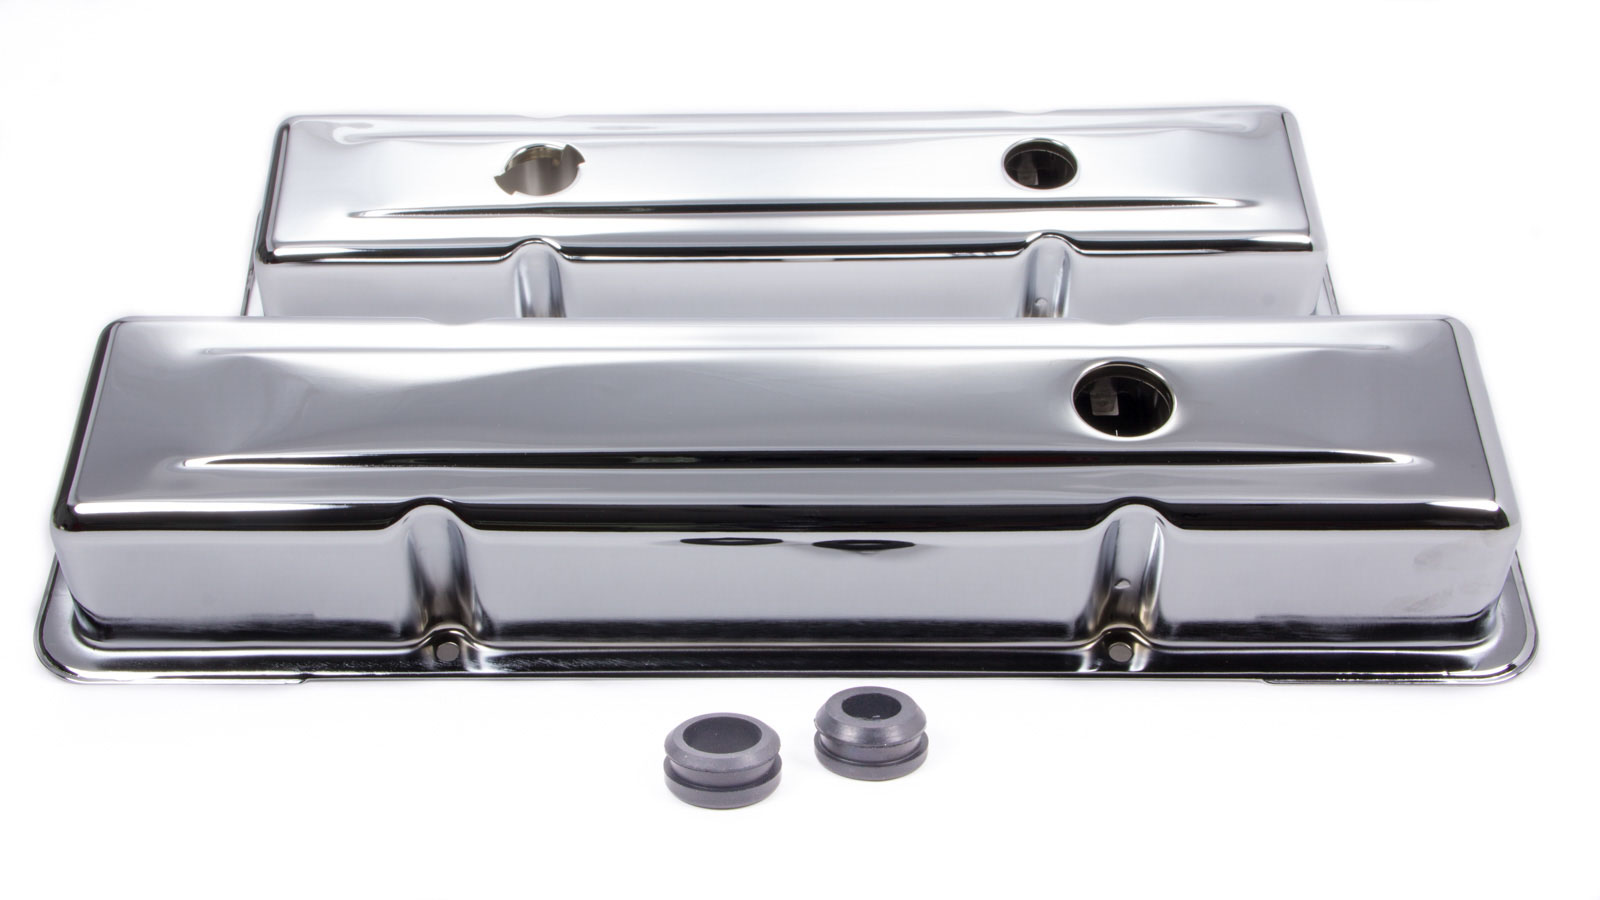 Bandit Valve Cover Set 9518; OE-Style Chrome Steel for Chevy 265-400 SBC